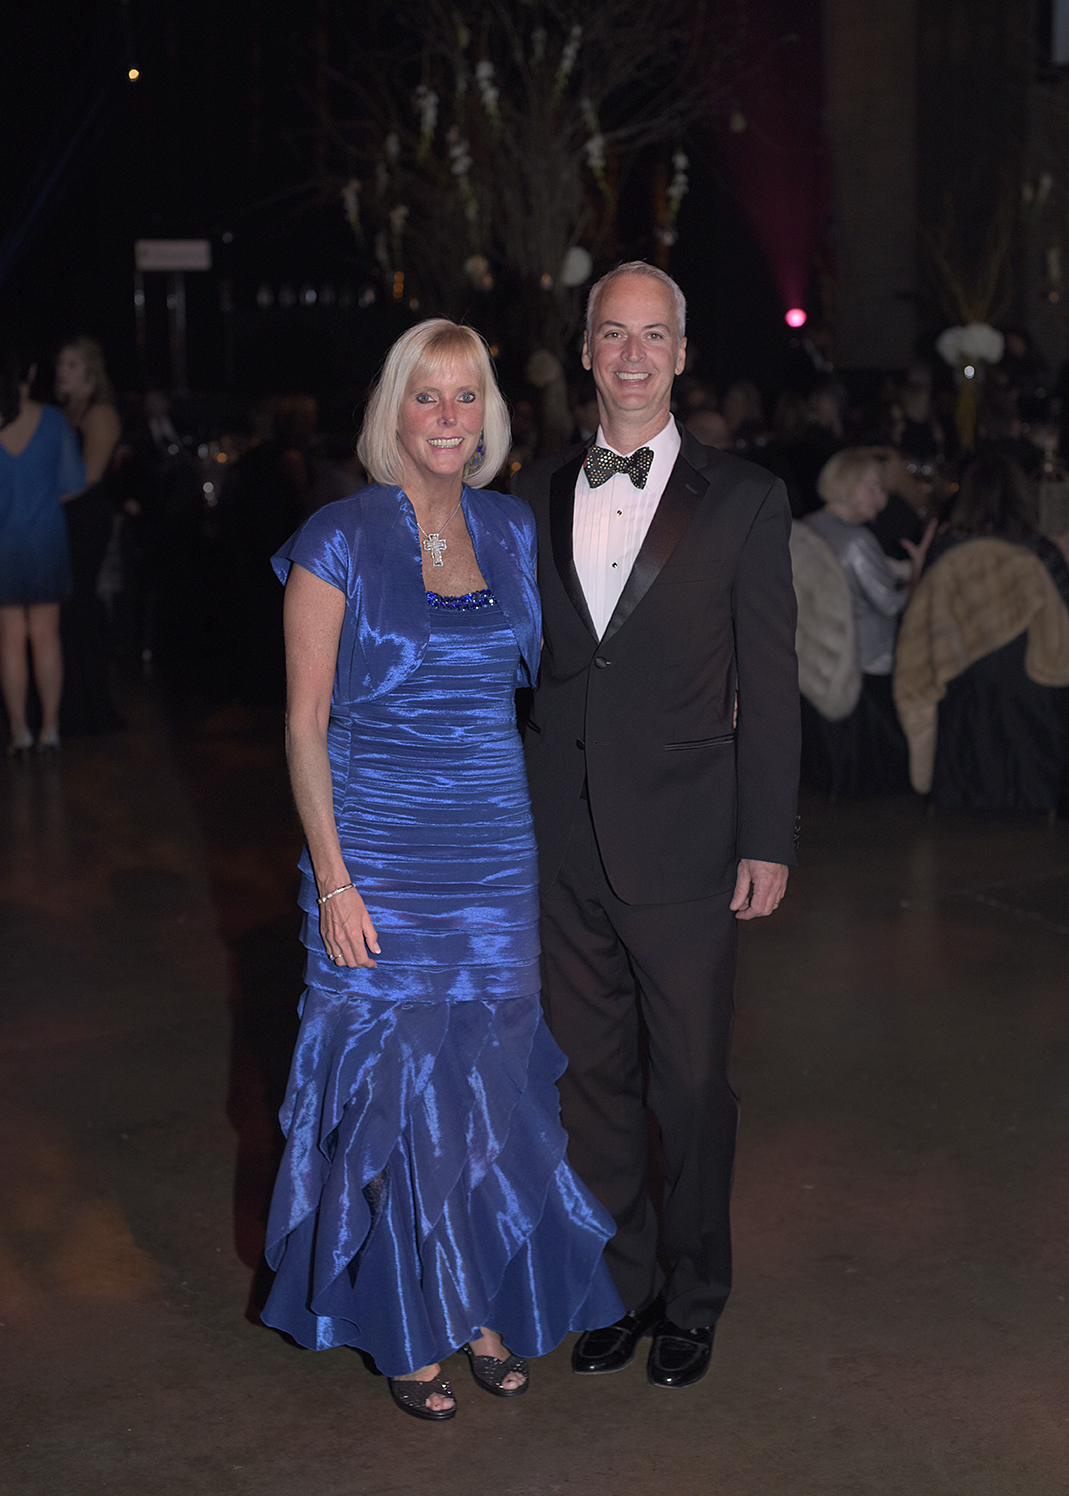 Allycin & Greg Alexander at the West Tennessee Healthcare Foundation Gala. Greg was the chair of the event.